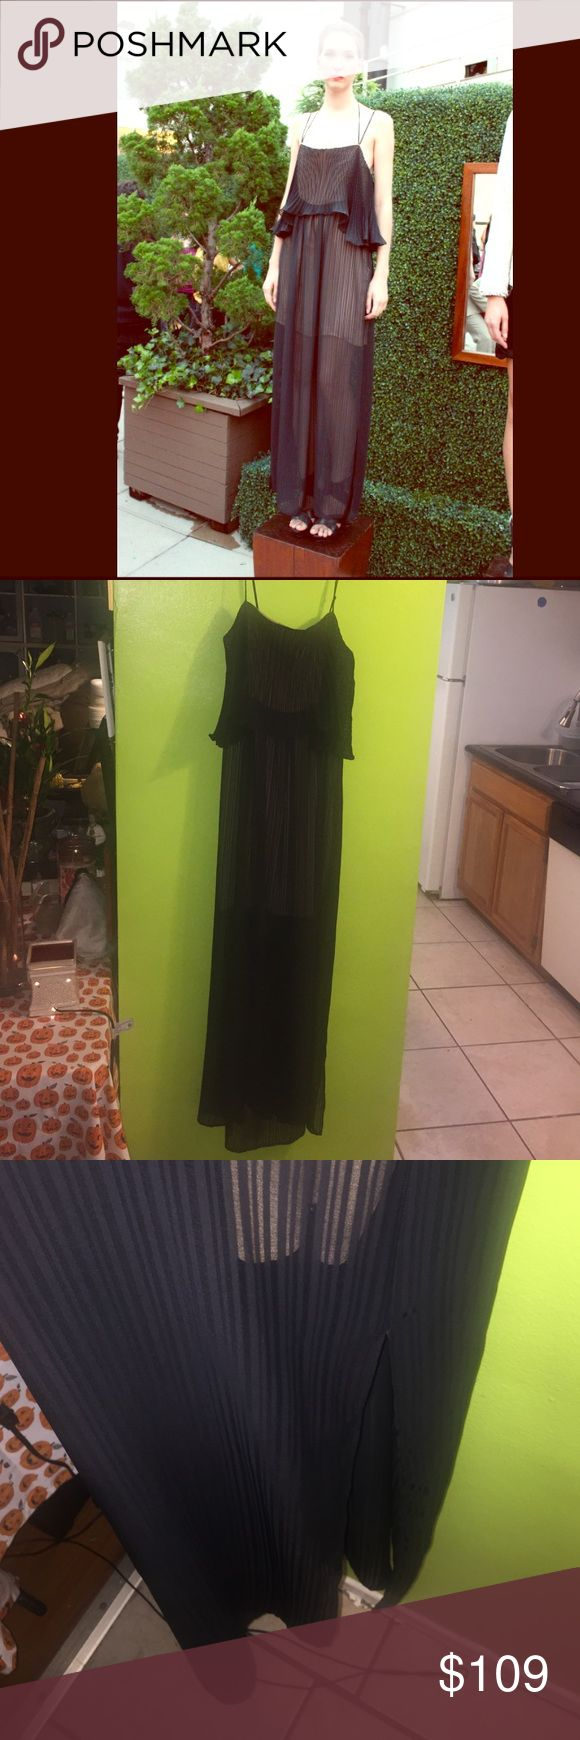 W118 Black Chiffon Maxi Dress Black maxi dress same exact one as Walter Baker presented in his spring collection on the rooftop of the Empire Hotel.                                   Slits on sides of Dress NWOT W118 by Walter Baker Dresses Maxi